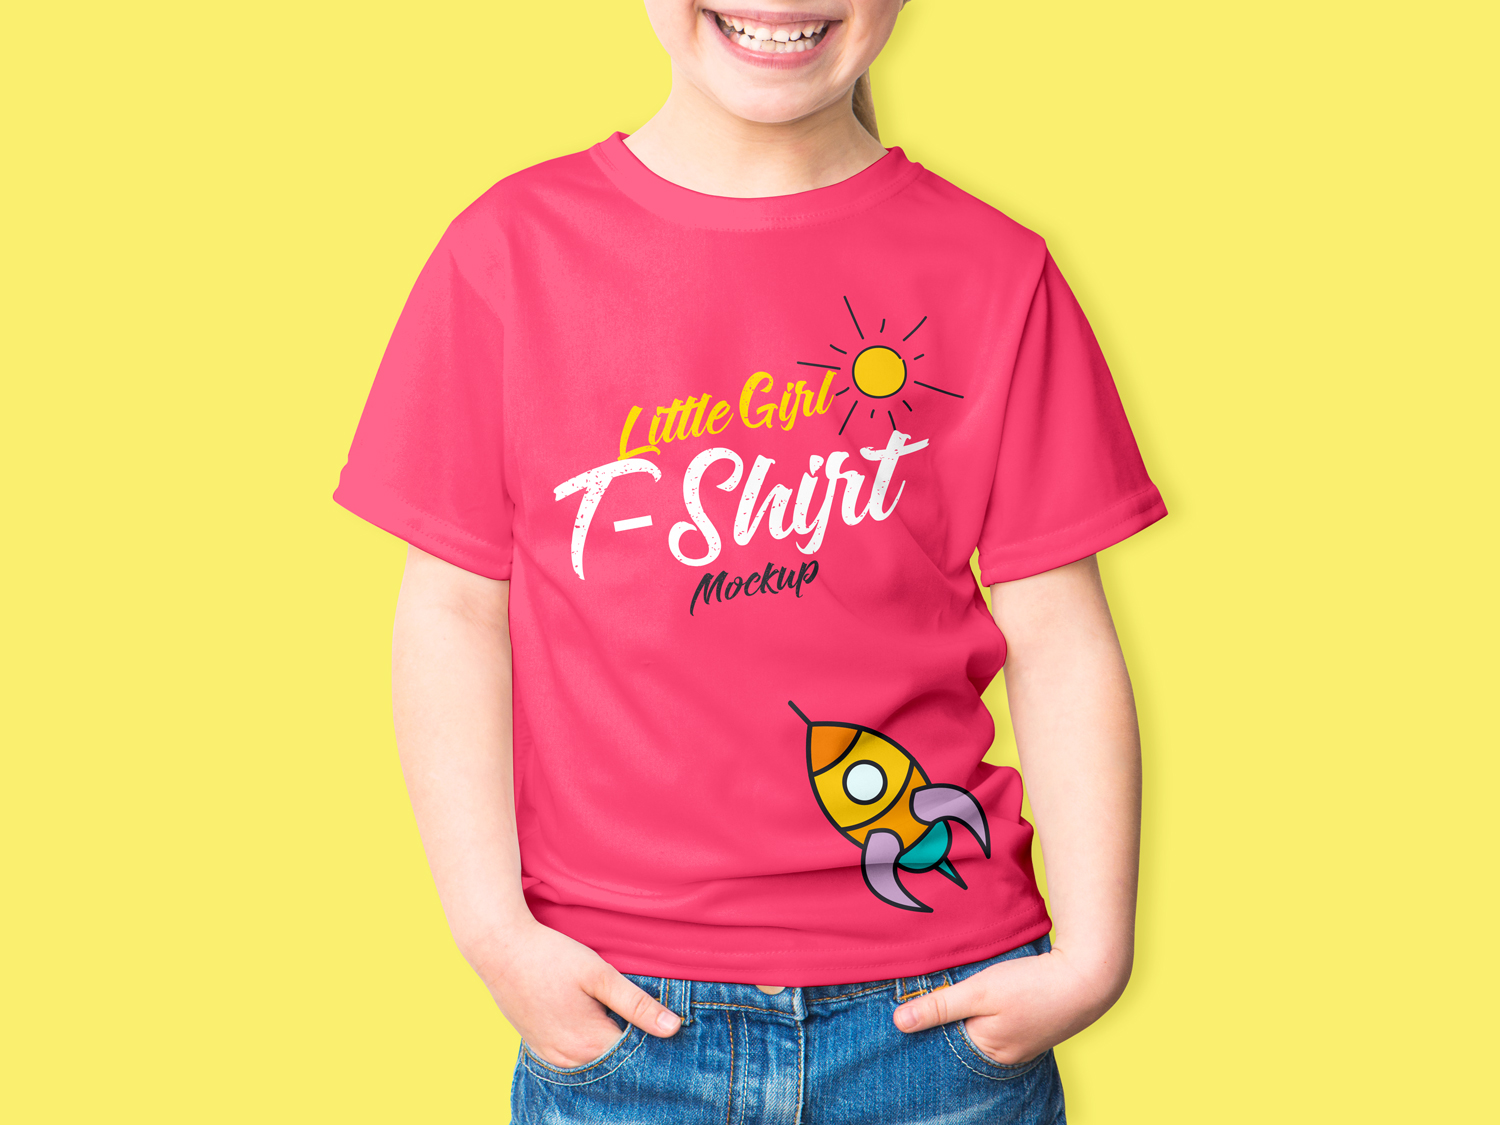 Free-Little-Girl-T-Shirt-Mockup-PSD-2018